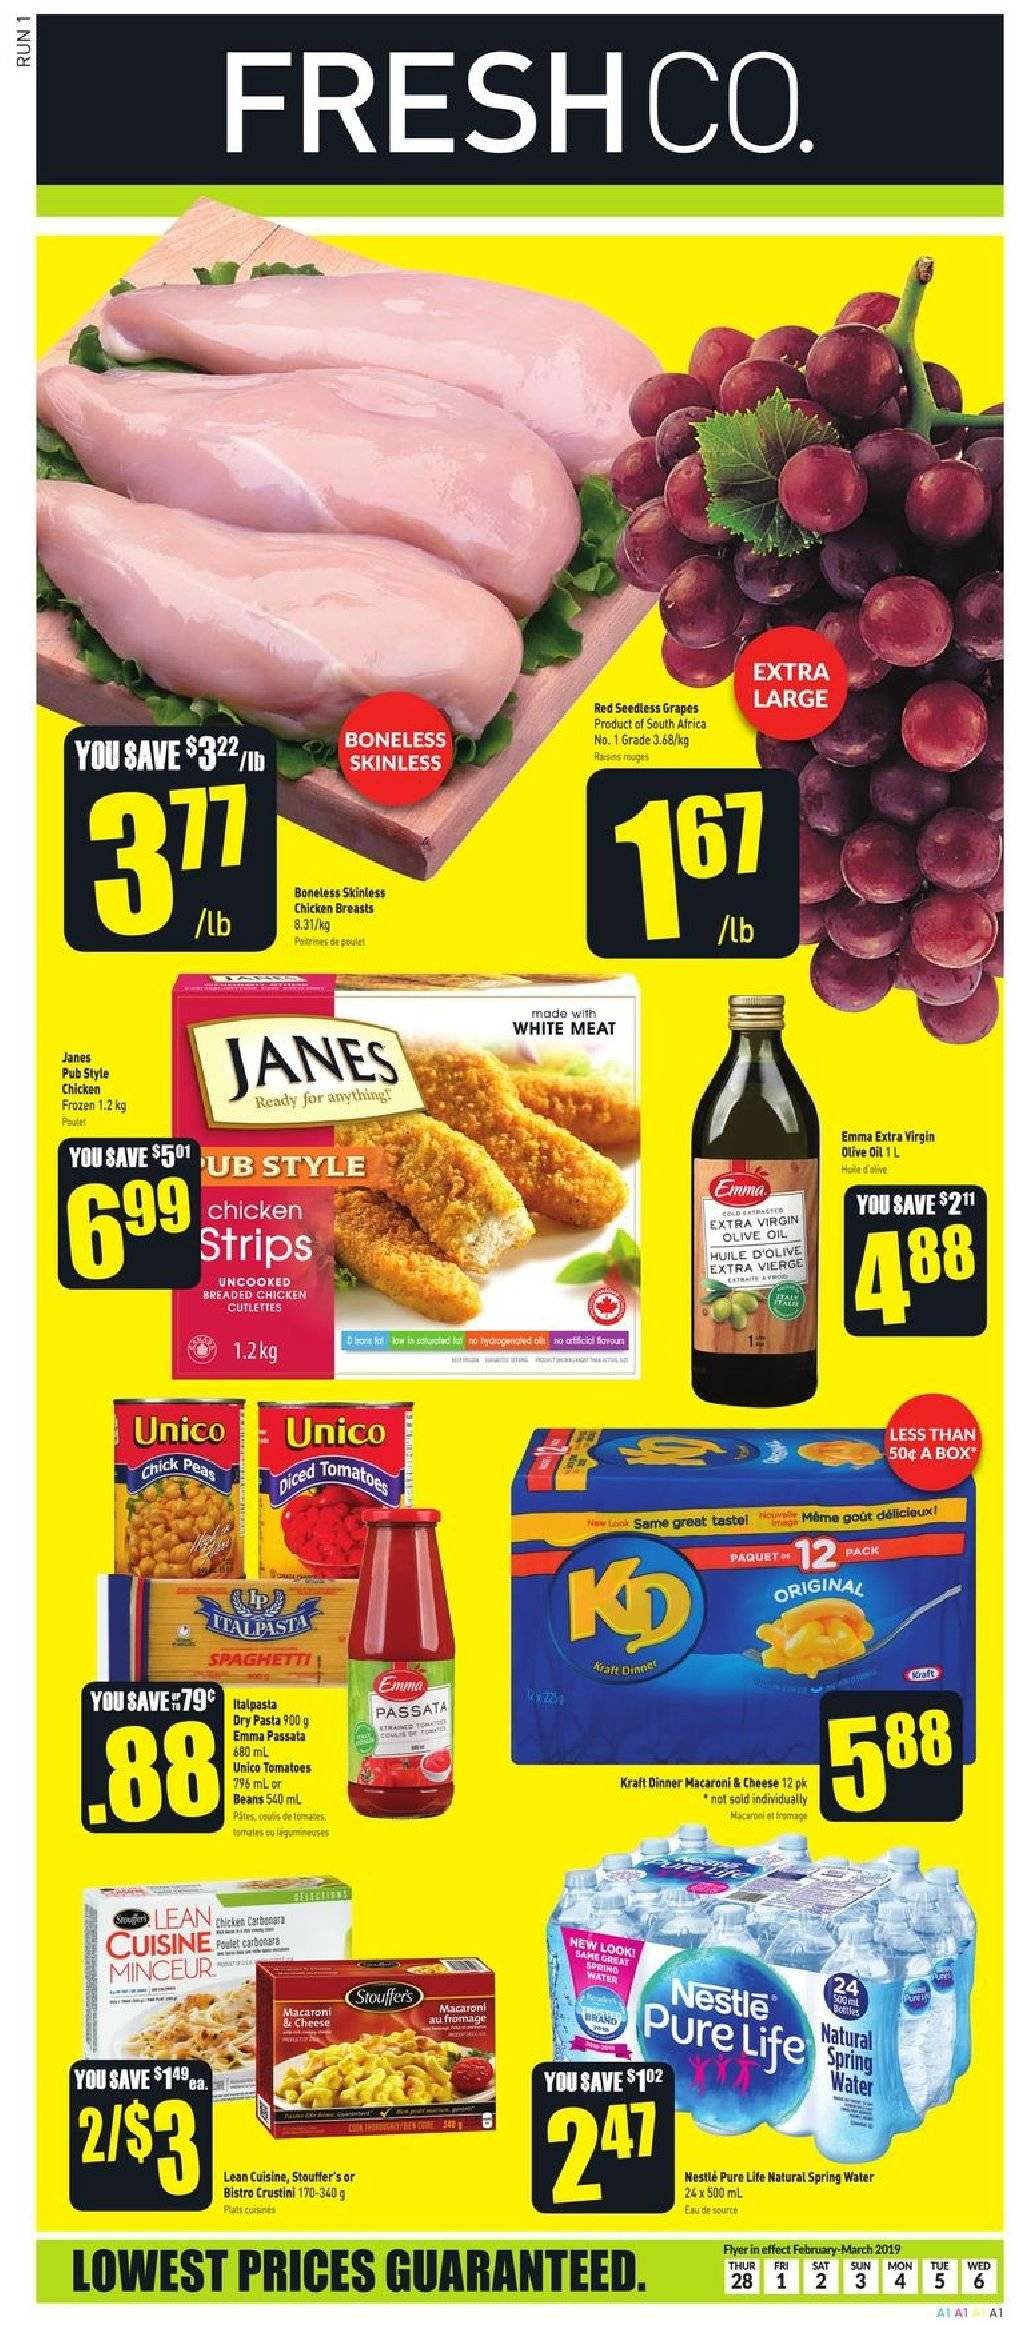 FreshCo. Flyer  - February 28, 2019 - March 06, 2019. Page 1.